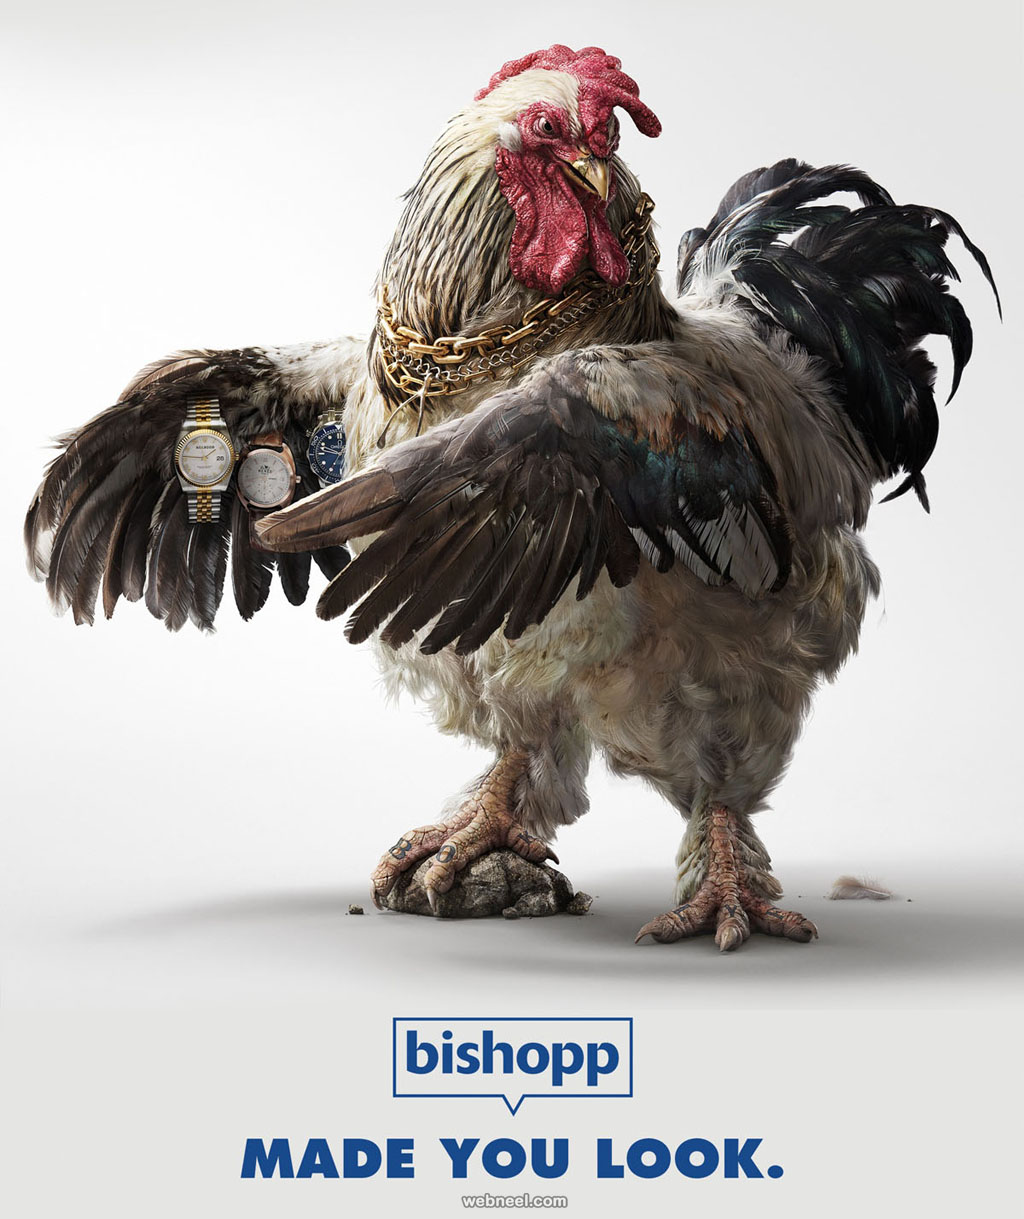 bishopp outdoor print advertising